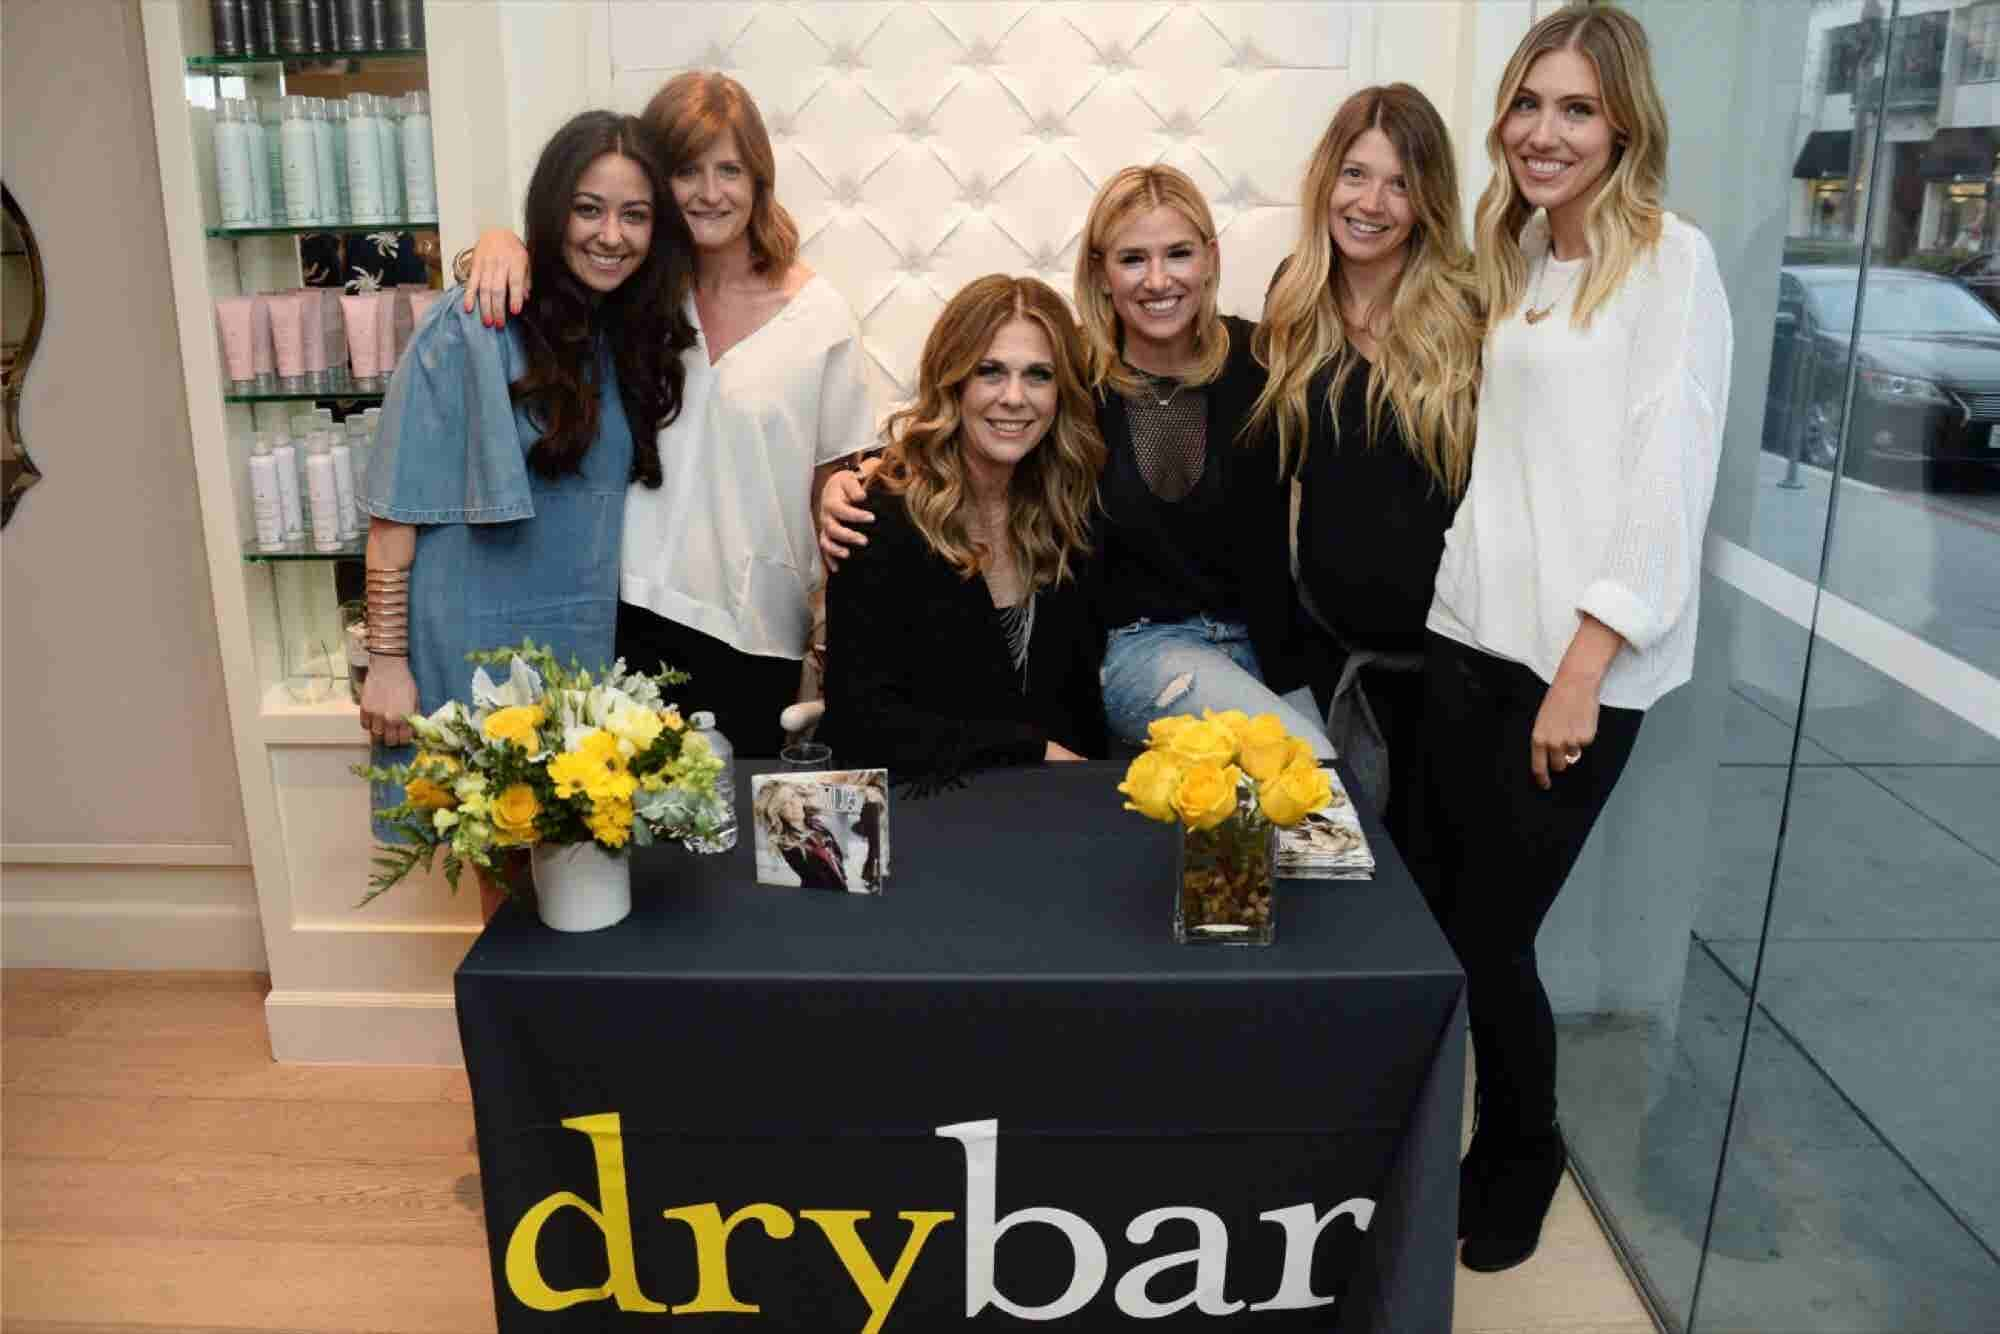 3 Things About Customer Experience You Can Learn From Drybar